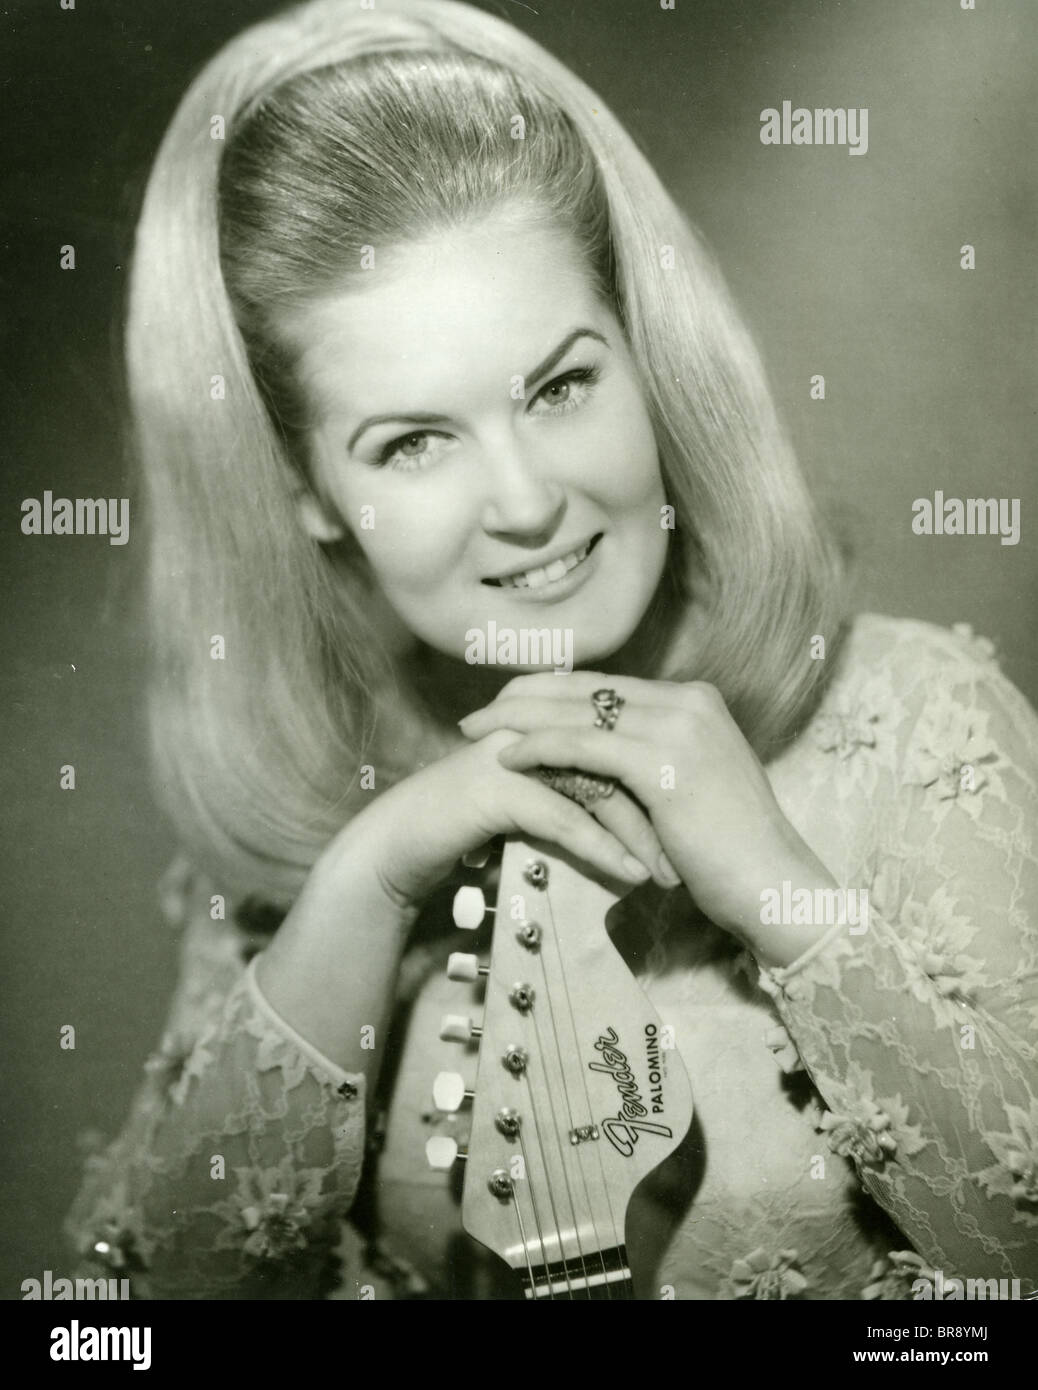 LYNN ANDERSON NOUS JOINDRE Pays et musicien occidental Photo Stock